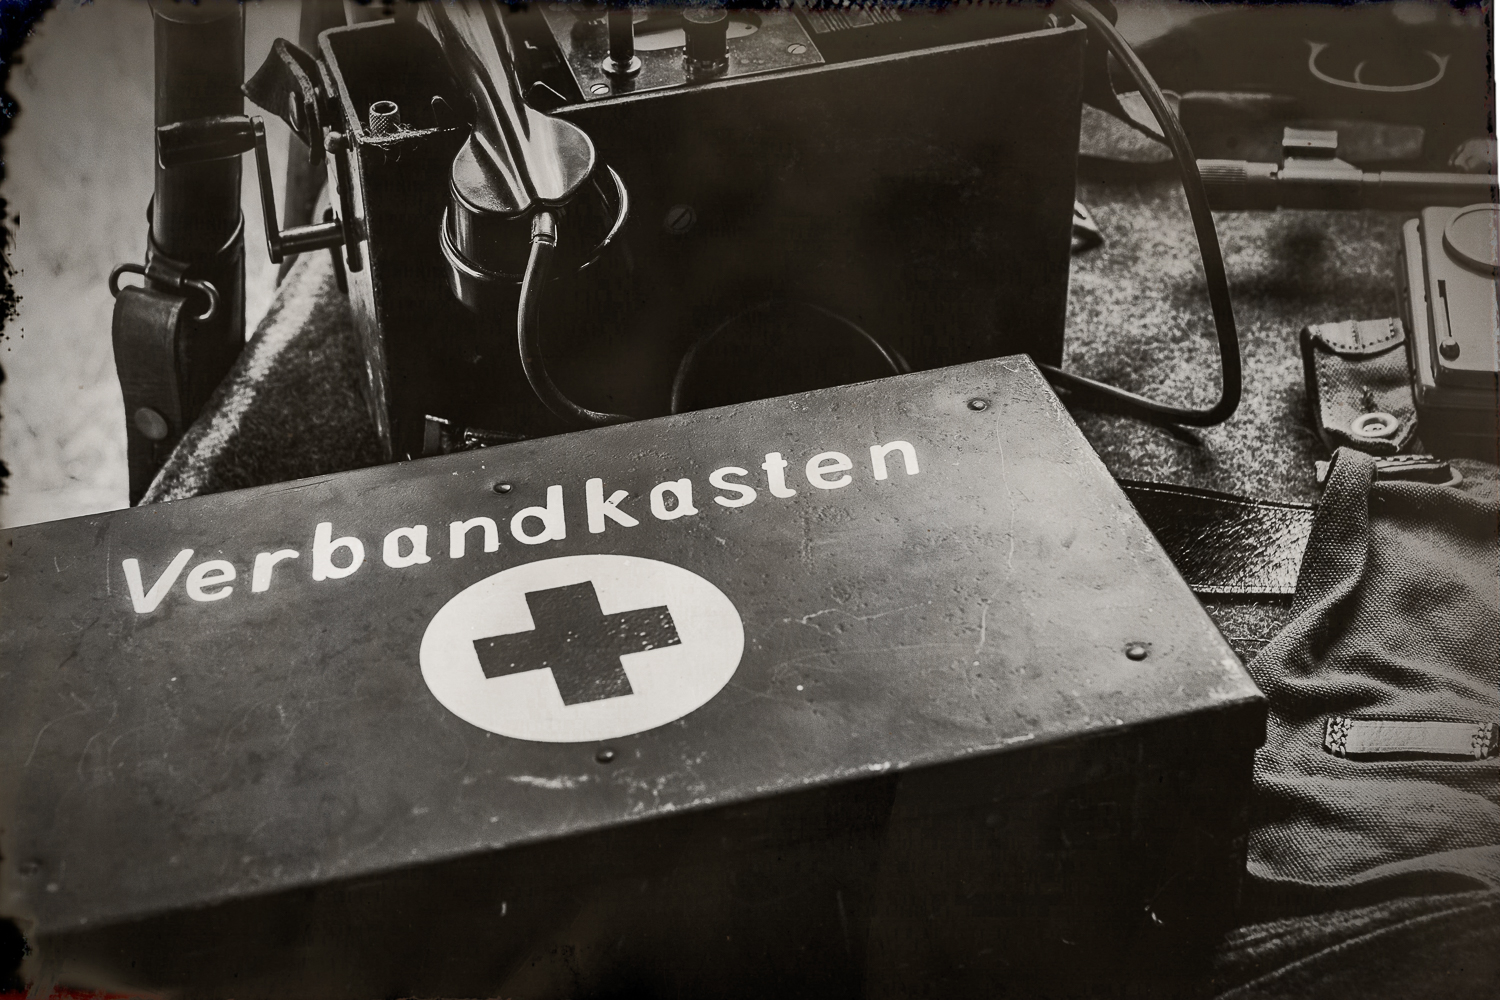 German First Aid Kit